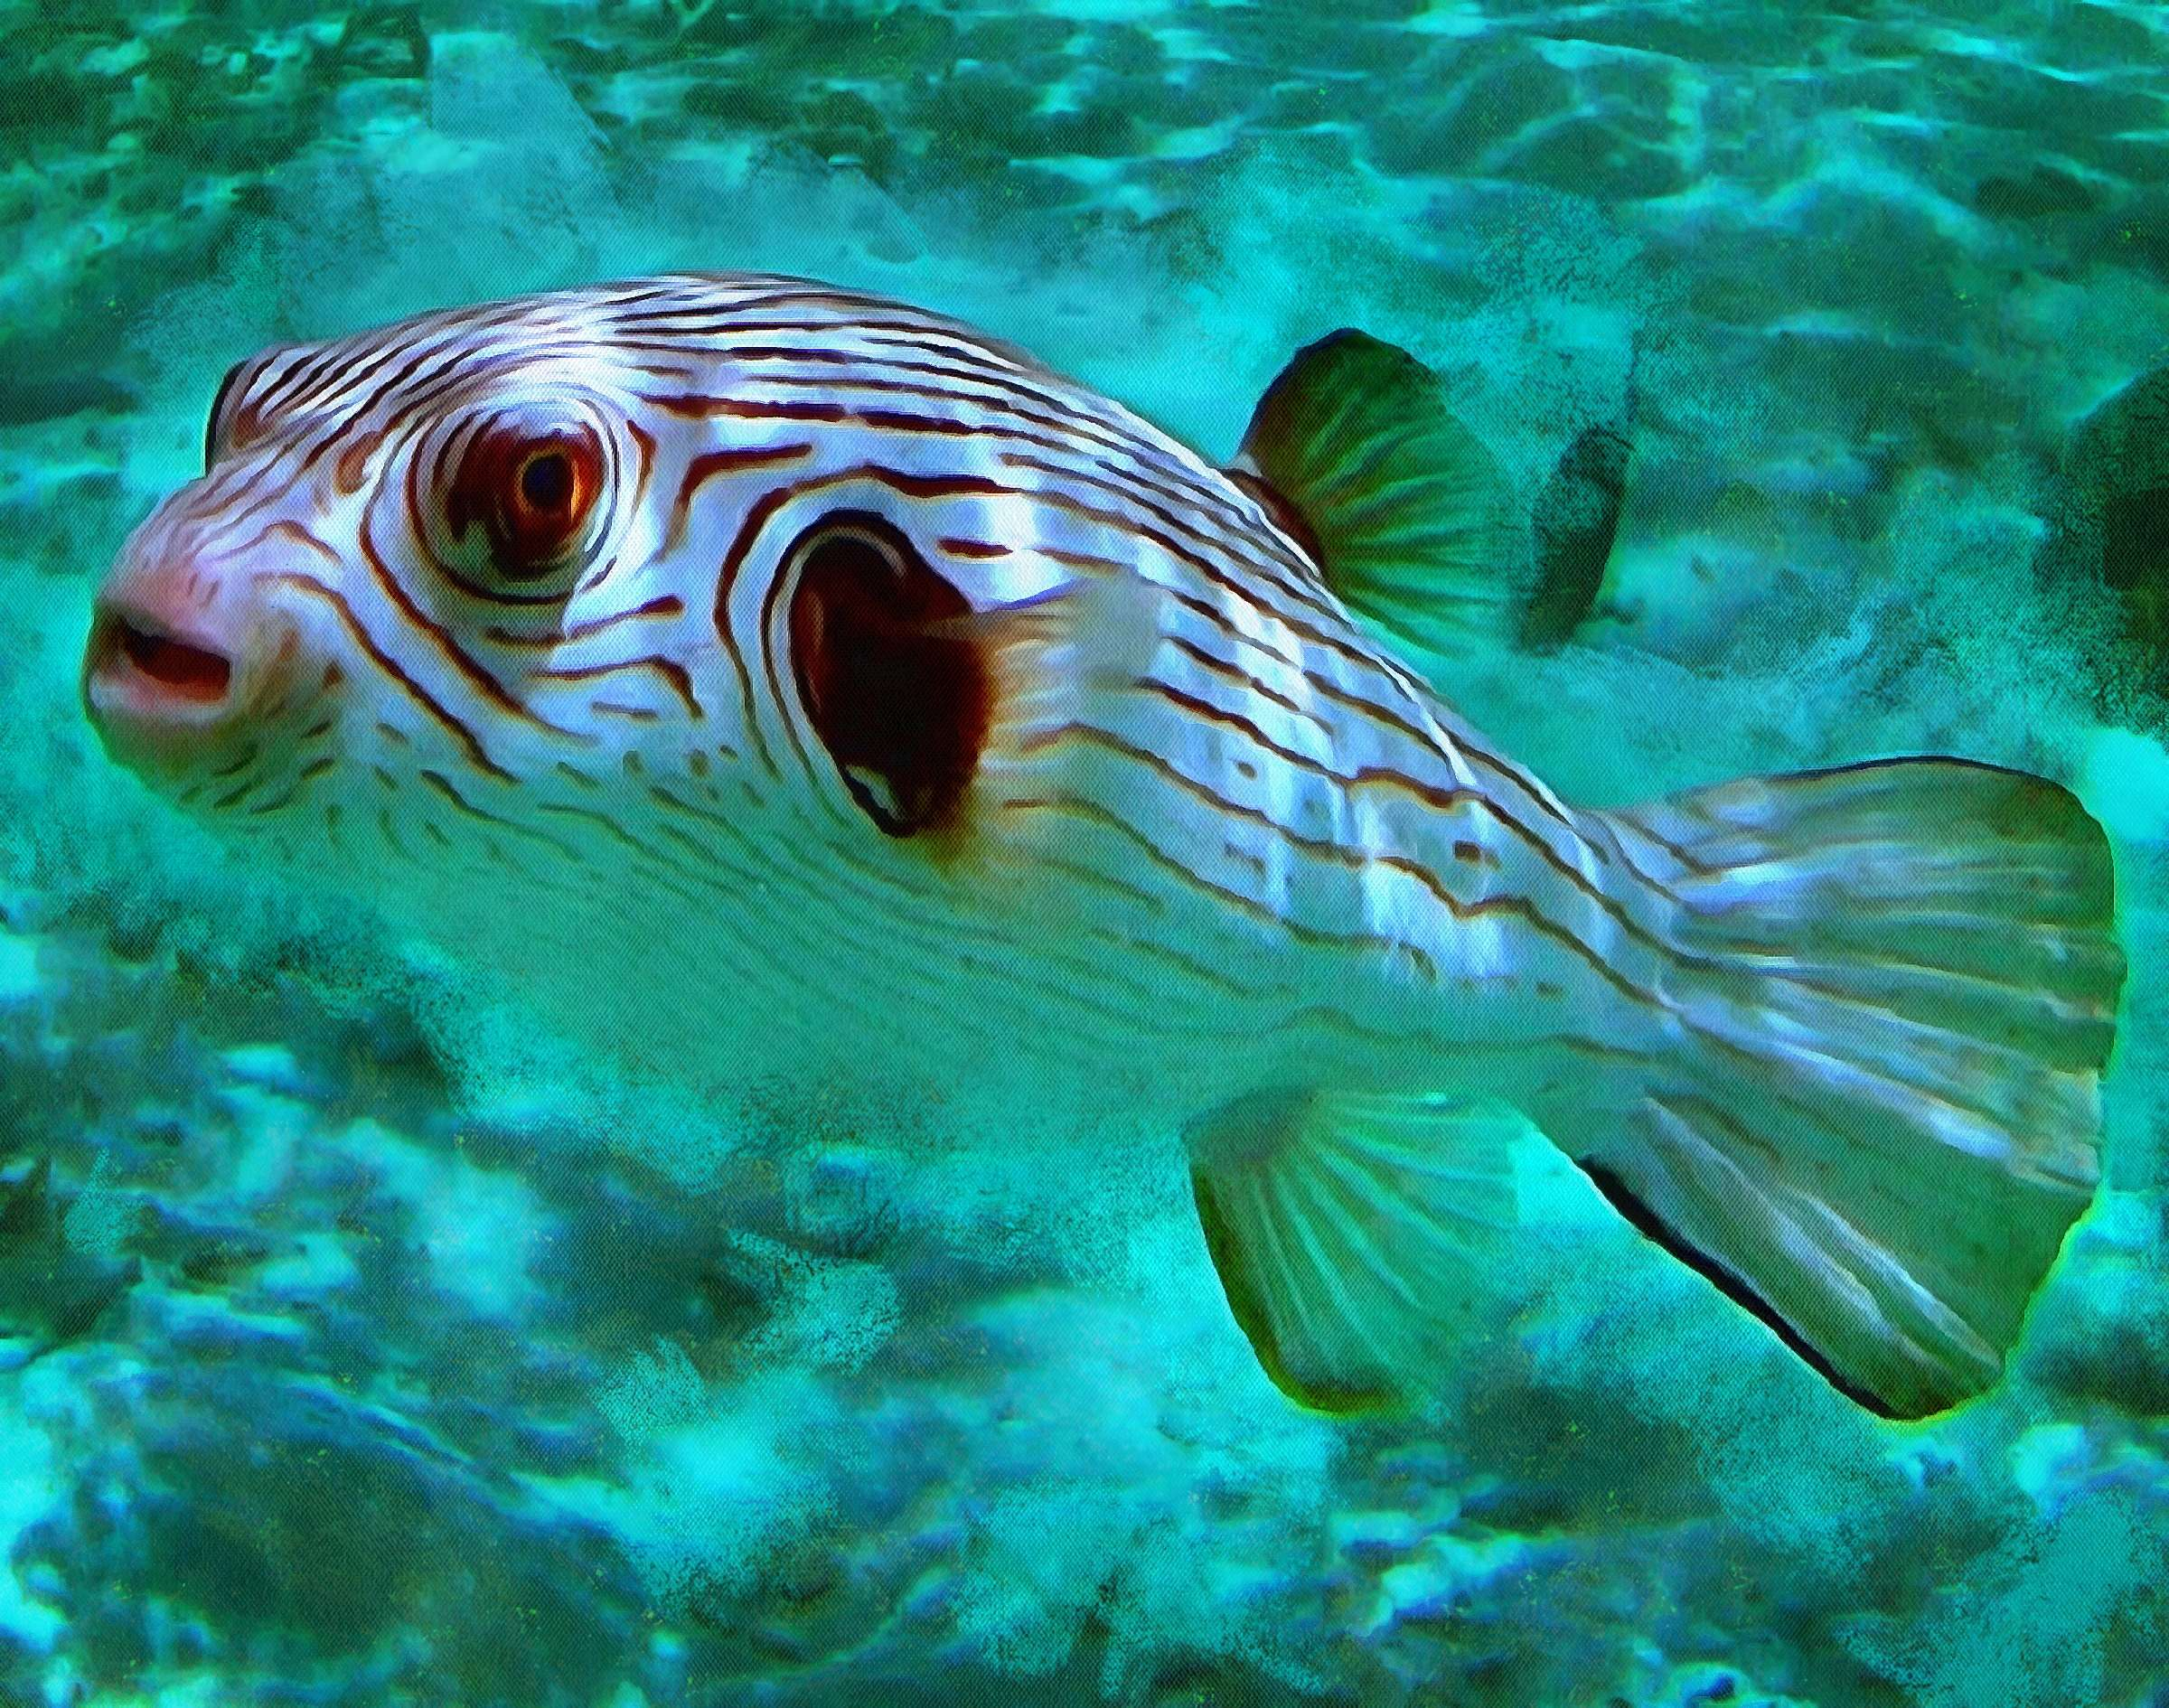 Puffer fish facts interesting facts about puffer fish for Puffer fish images